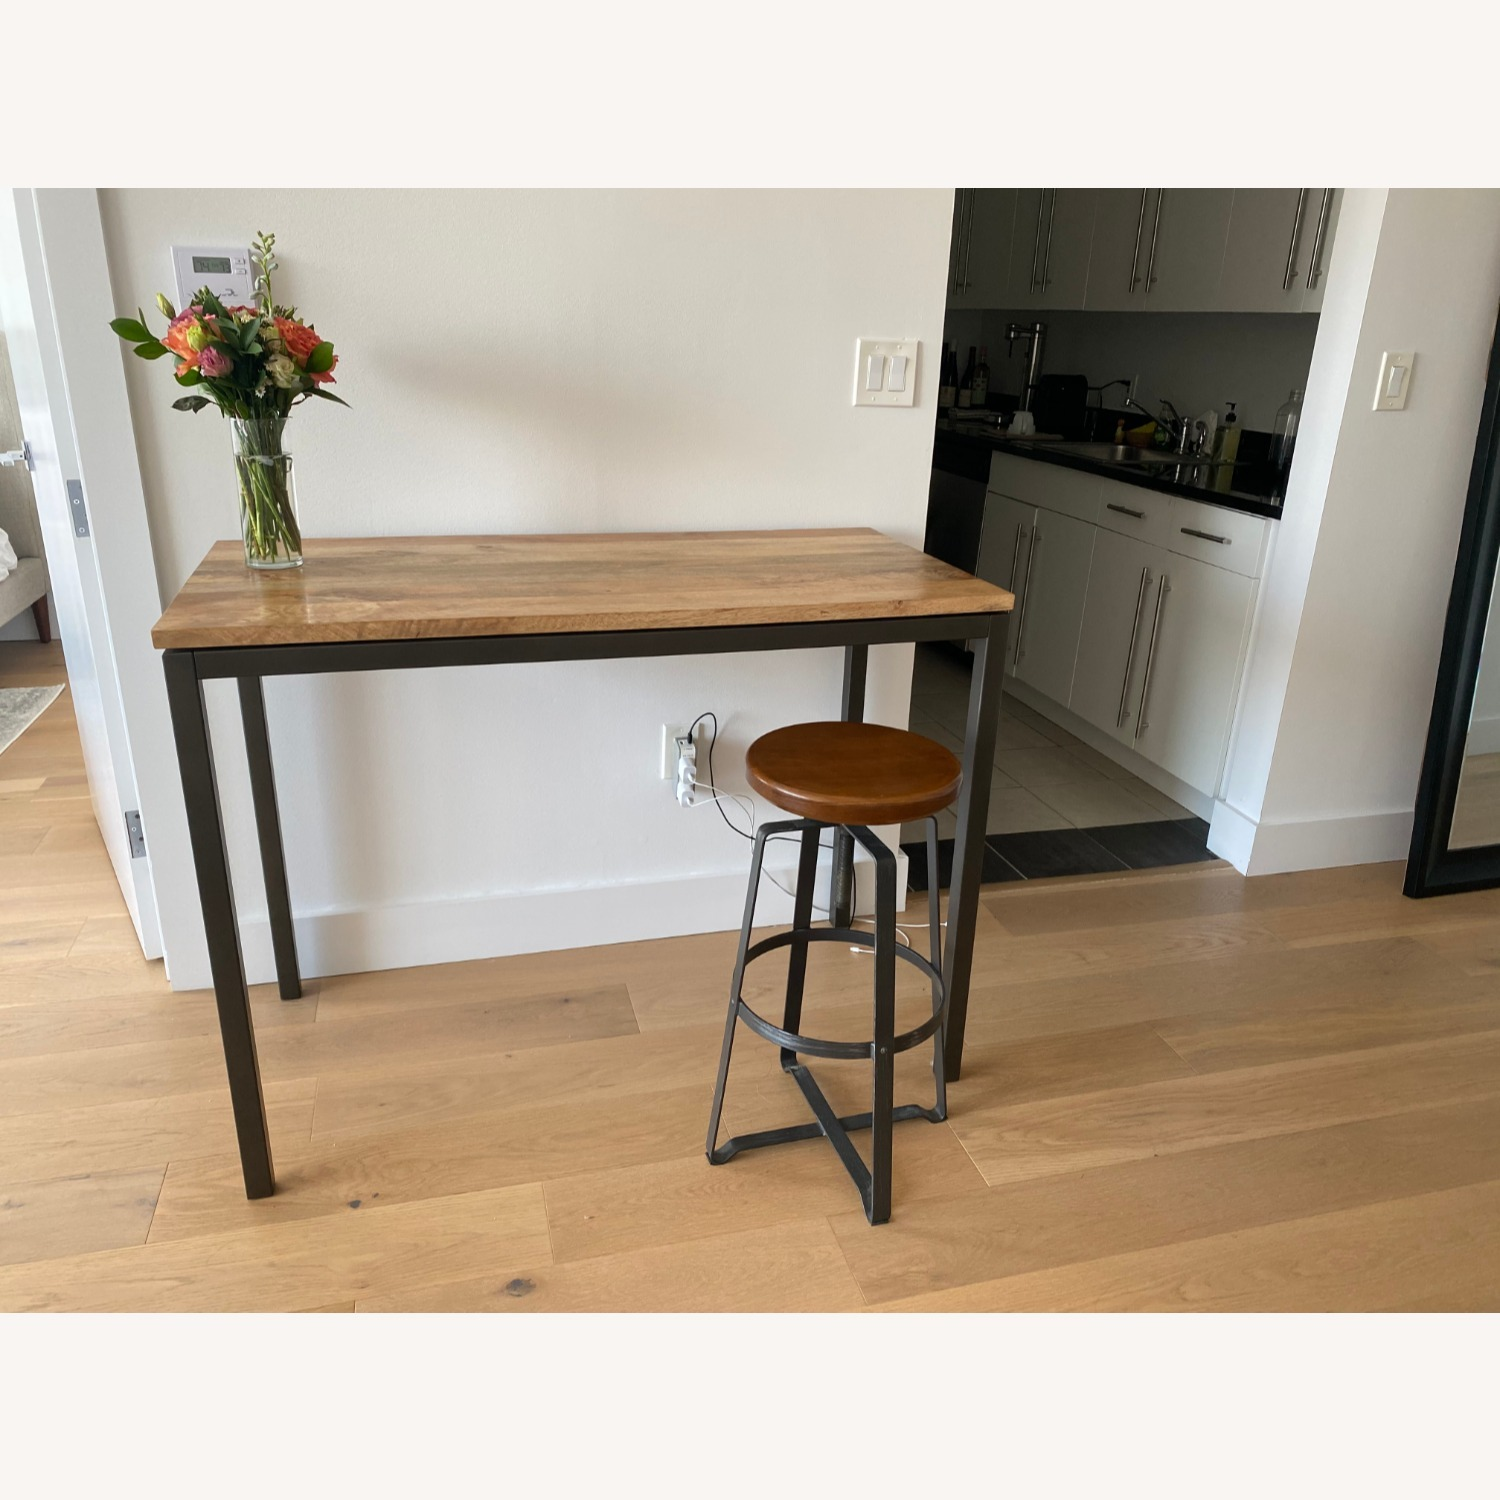 West Elm Box Frame Counter Table & Stool - image-1